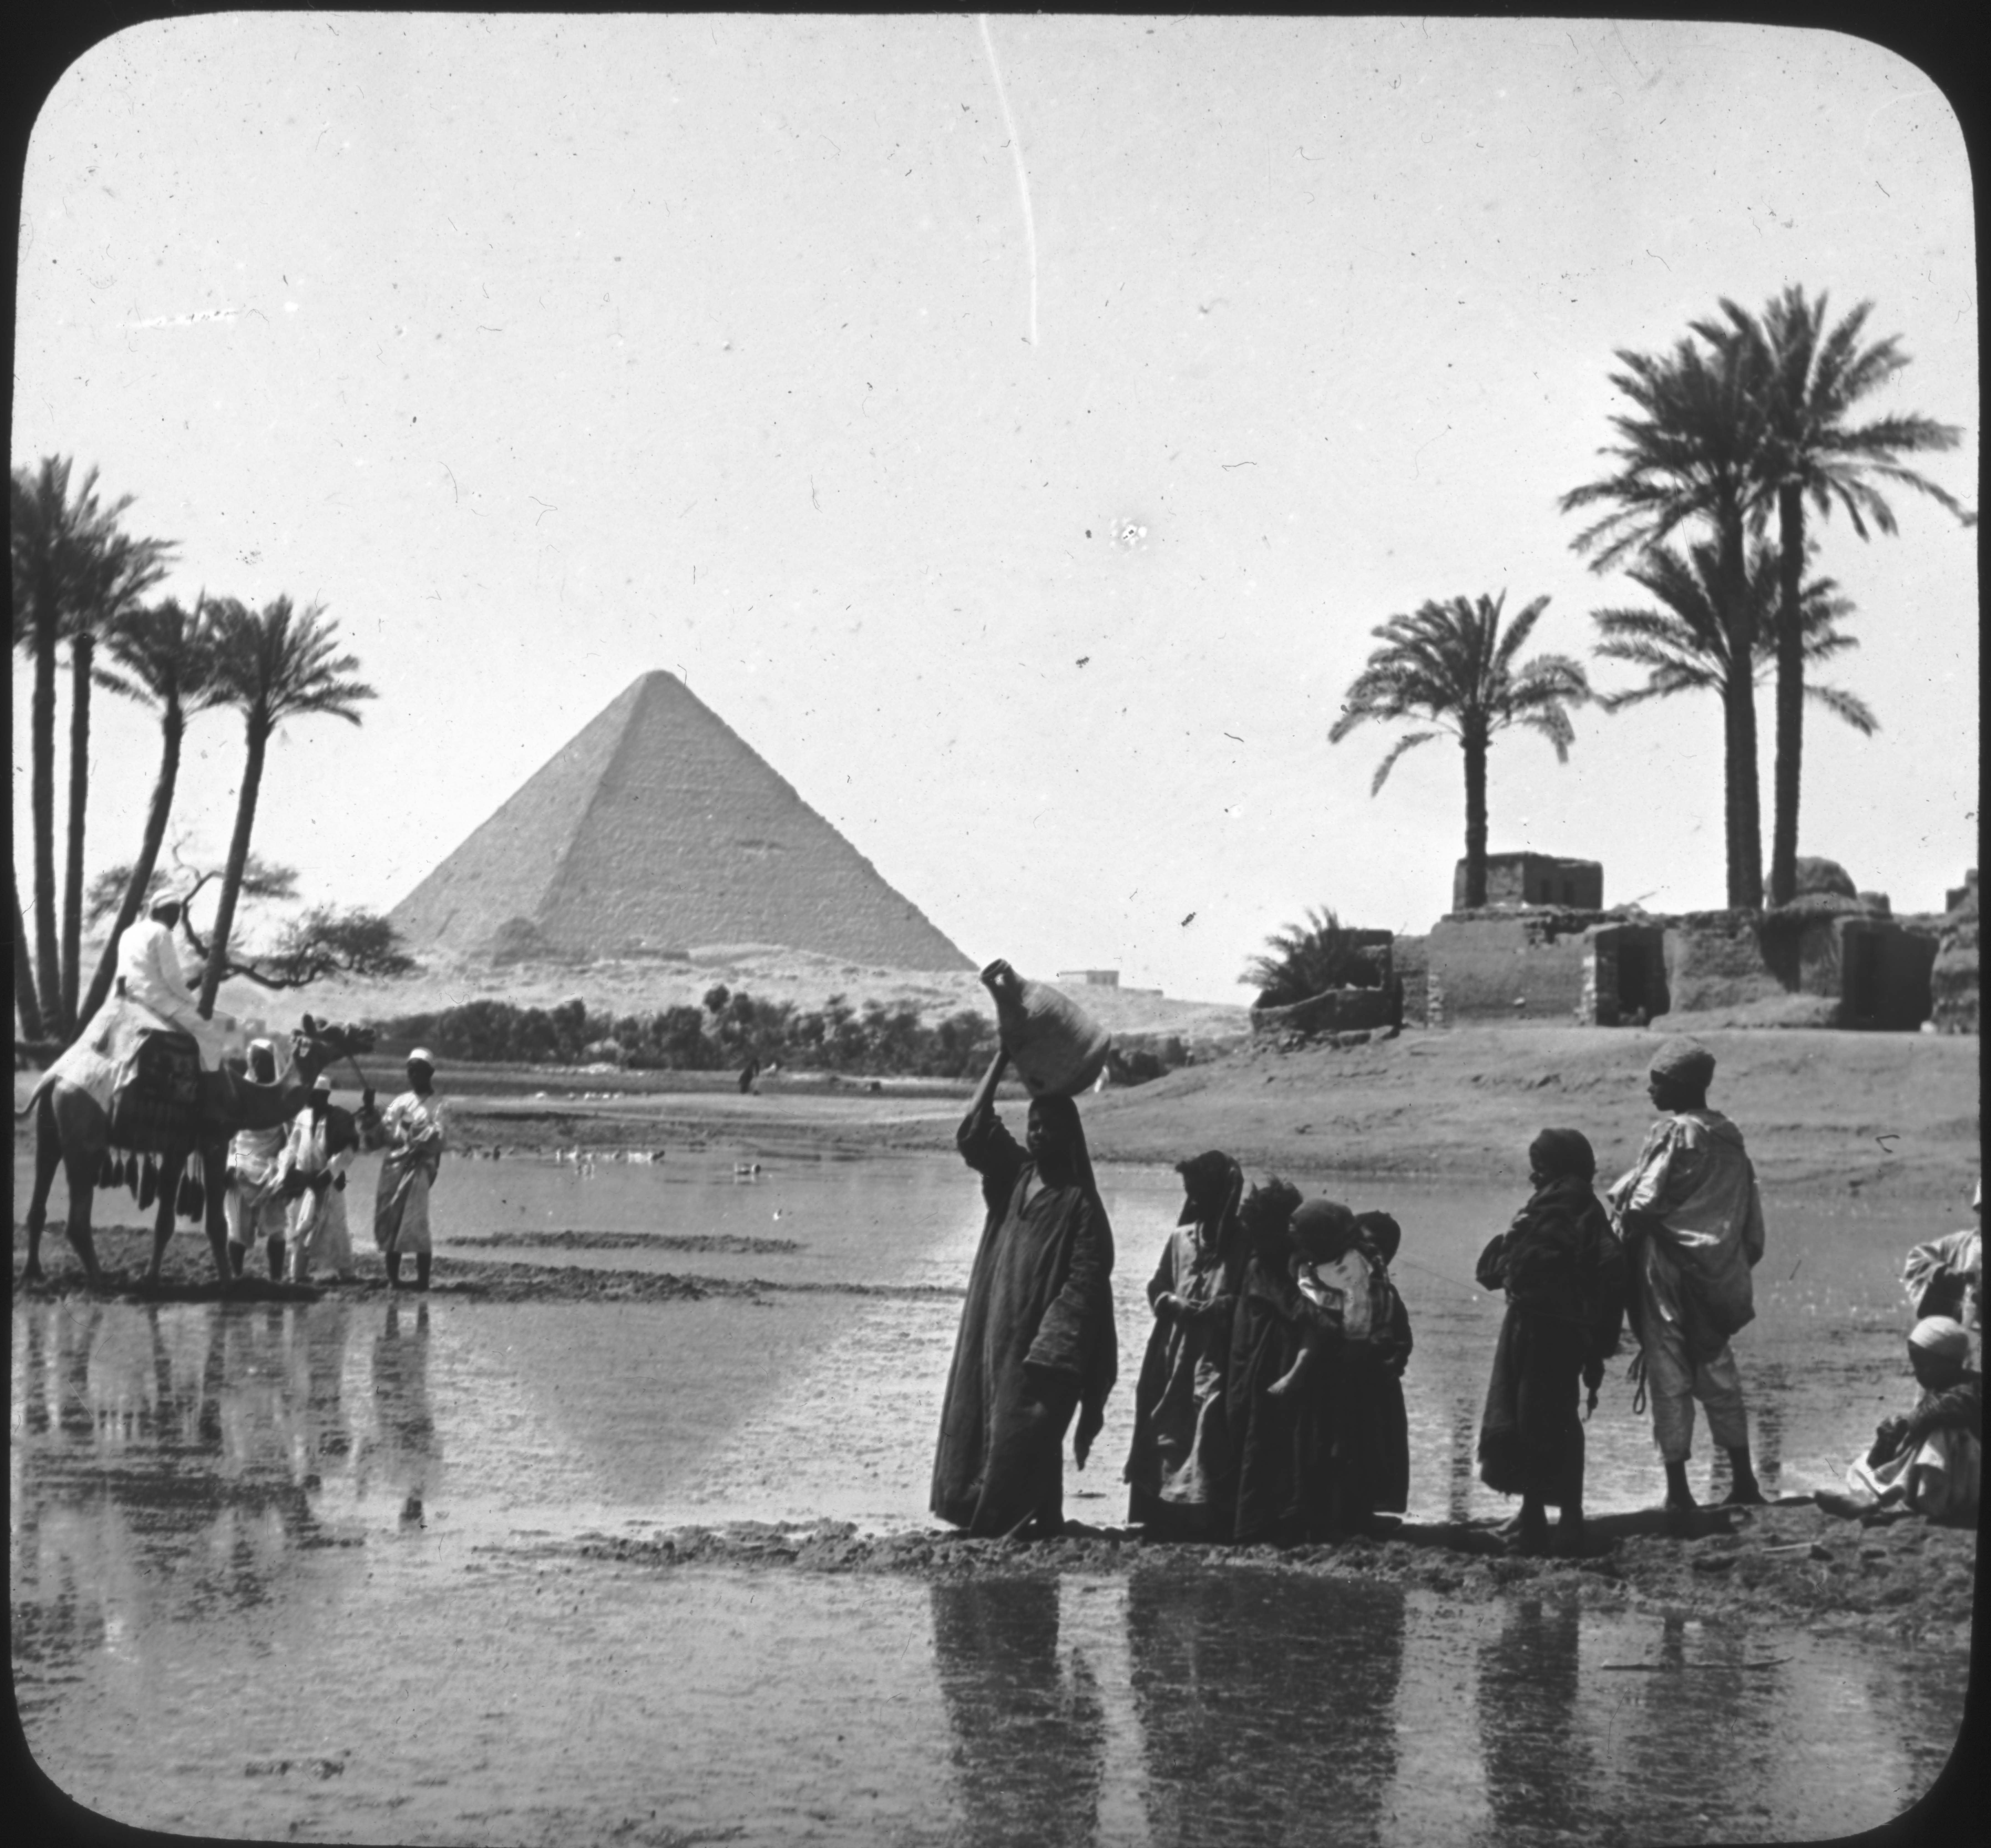 Inundation of the Nile, Egypt.